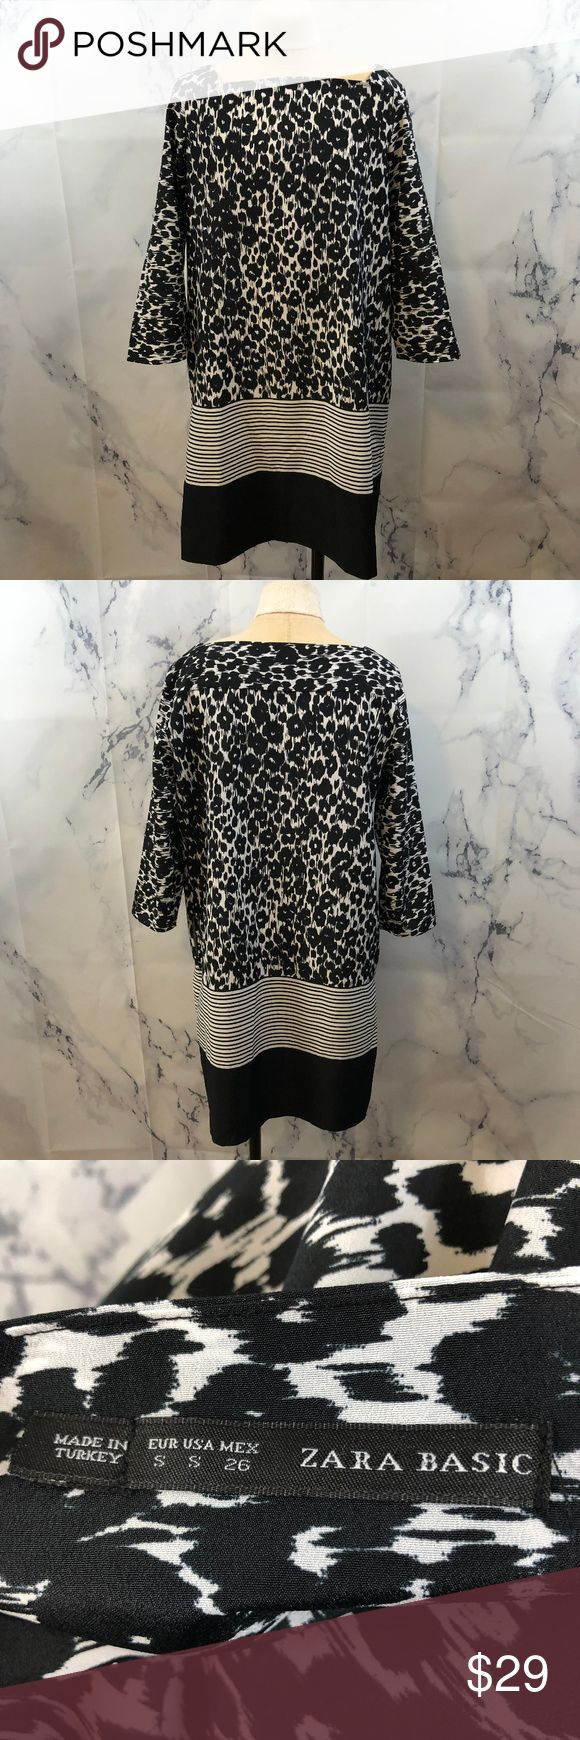 """Zara Animal Print Black and White Shift Dress Zara Animal Print Stripe Black and White Shift Dress With Pockets Materials: No materials tag, feels like polyester Size: Small Measurements Laid Flat Sleeve Length: 18"""" Bust: 19"""" Length: 34"""" Feel free to ask any questions, I can get back to you within 24 hours. Zara Dresses Mini"""